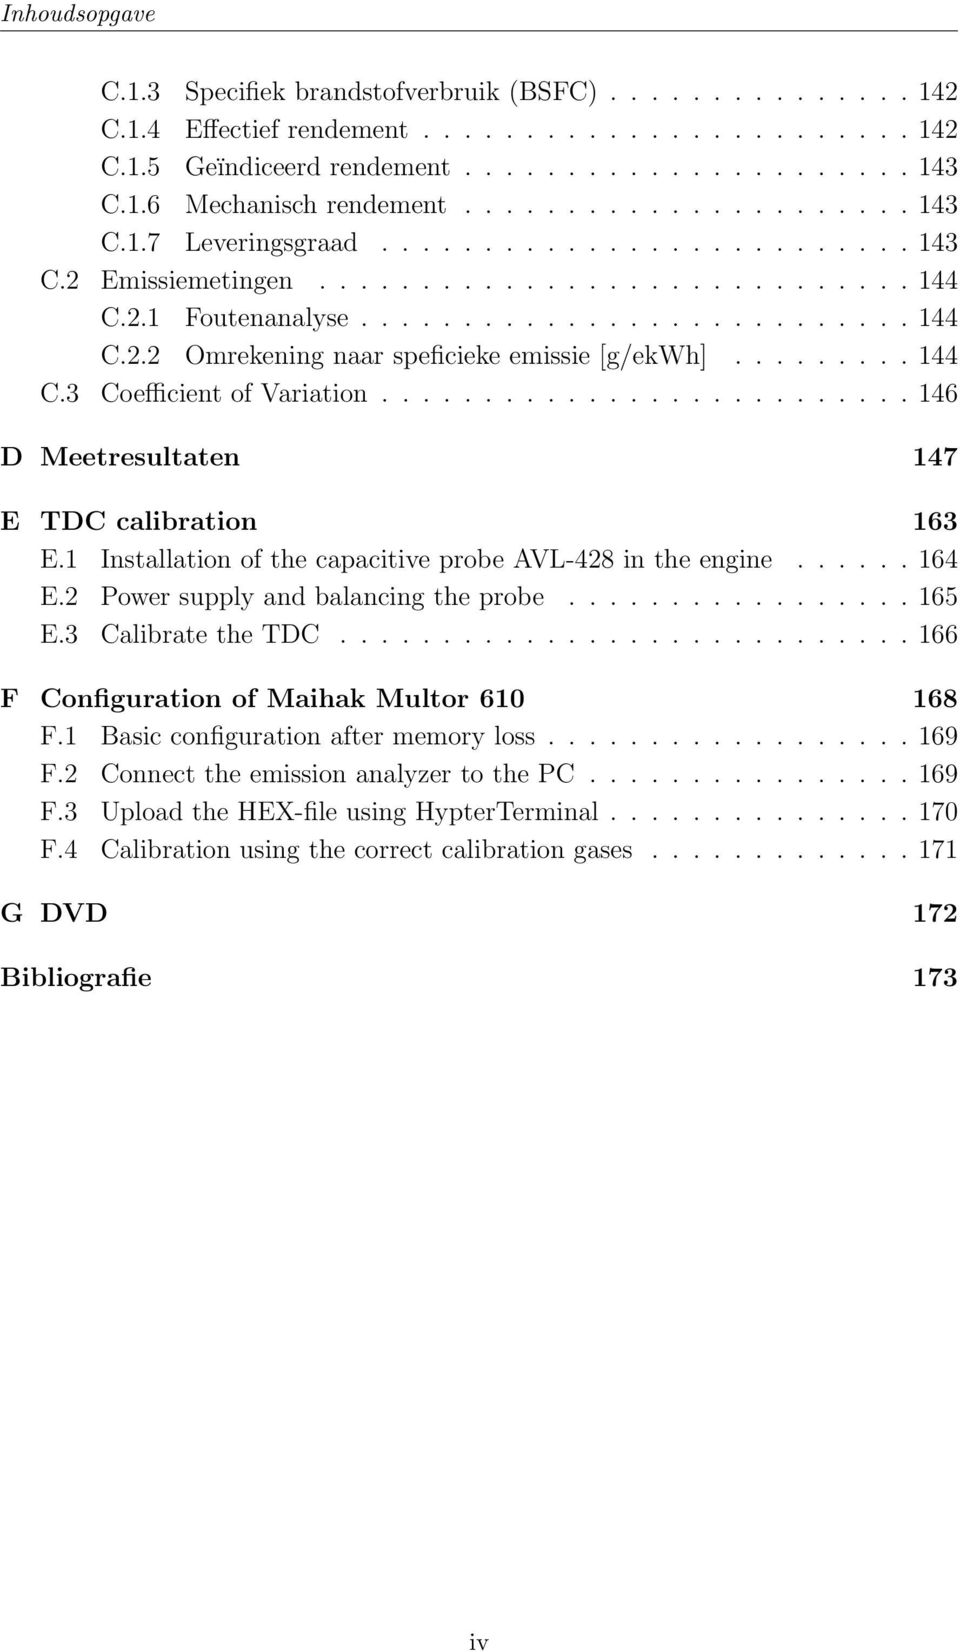 ........ 144 C.3 Coefficient of Variation.......................... 146 D Meetresultaten 147 E TDC calibration 163 E.1 Installation of the capacitive probe AVL-428 in the engine...... 164 E.